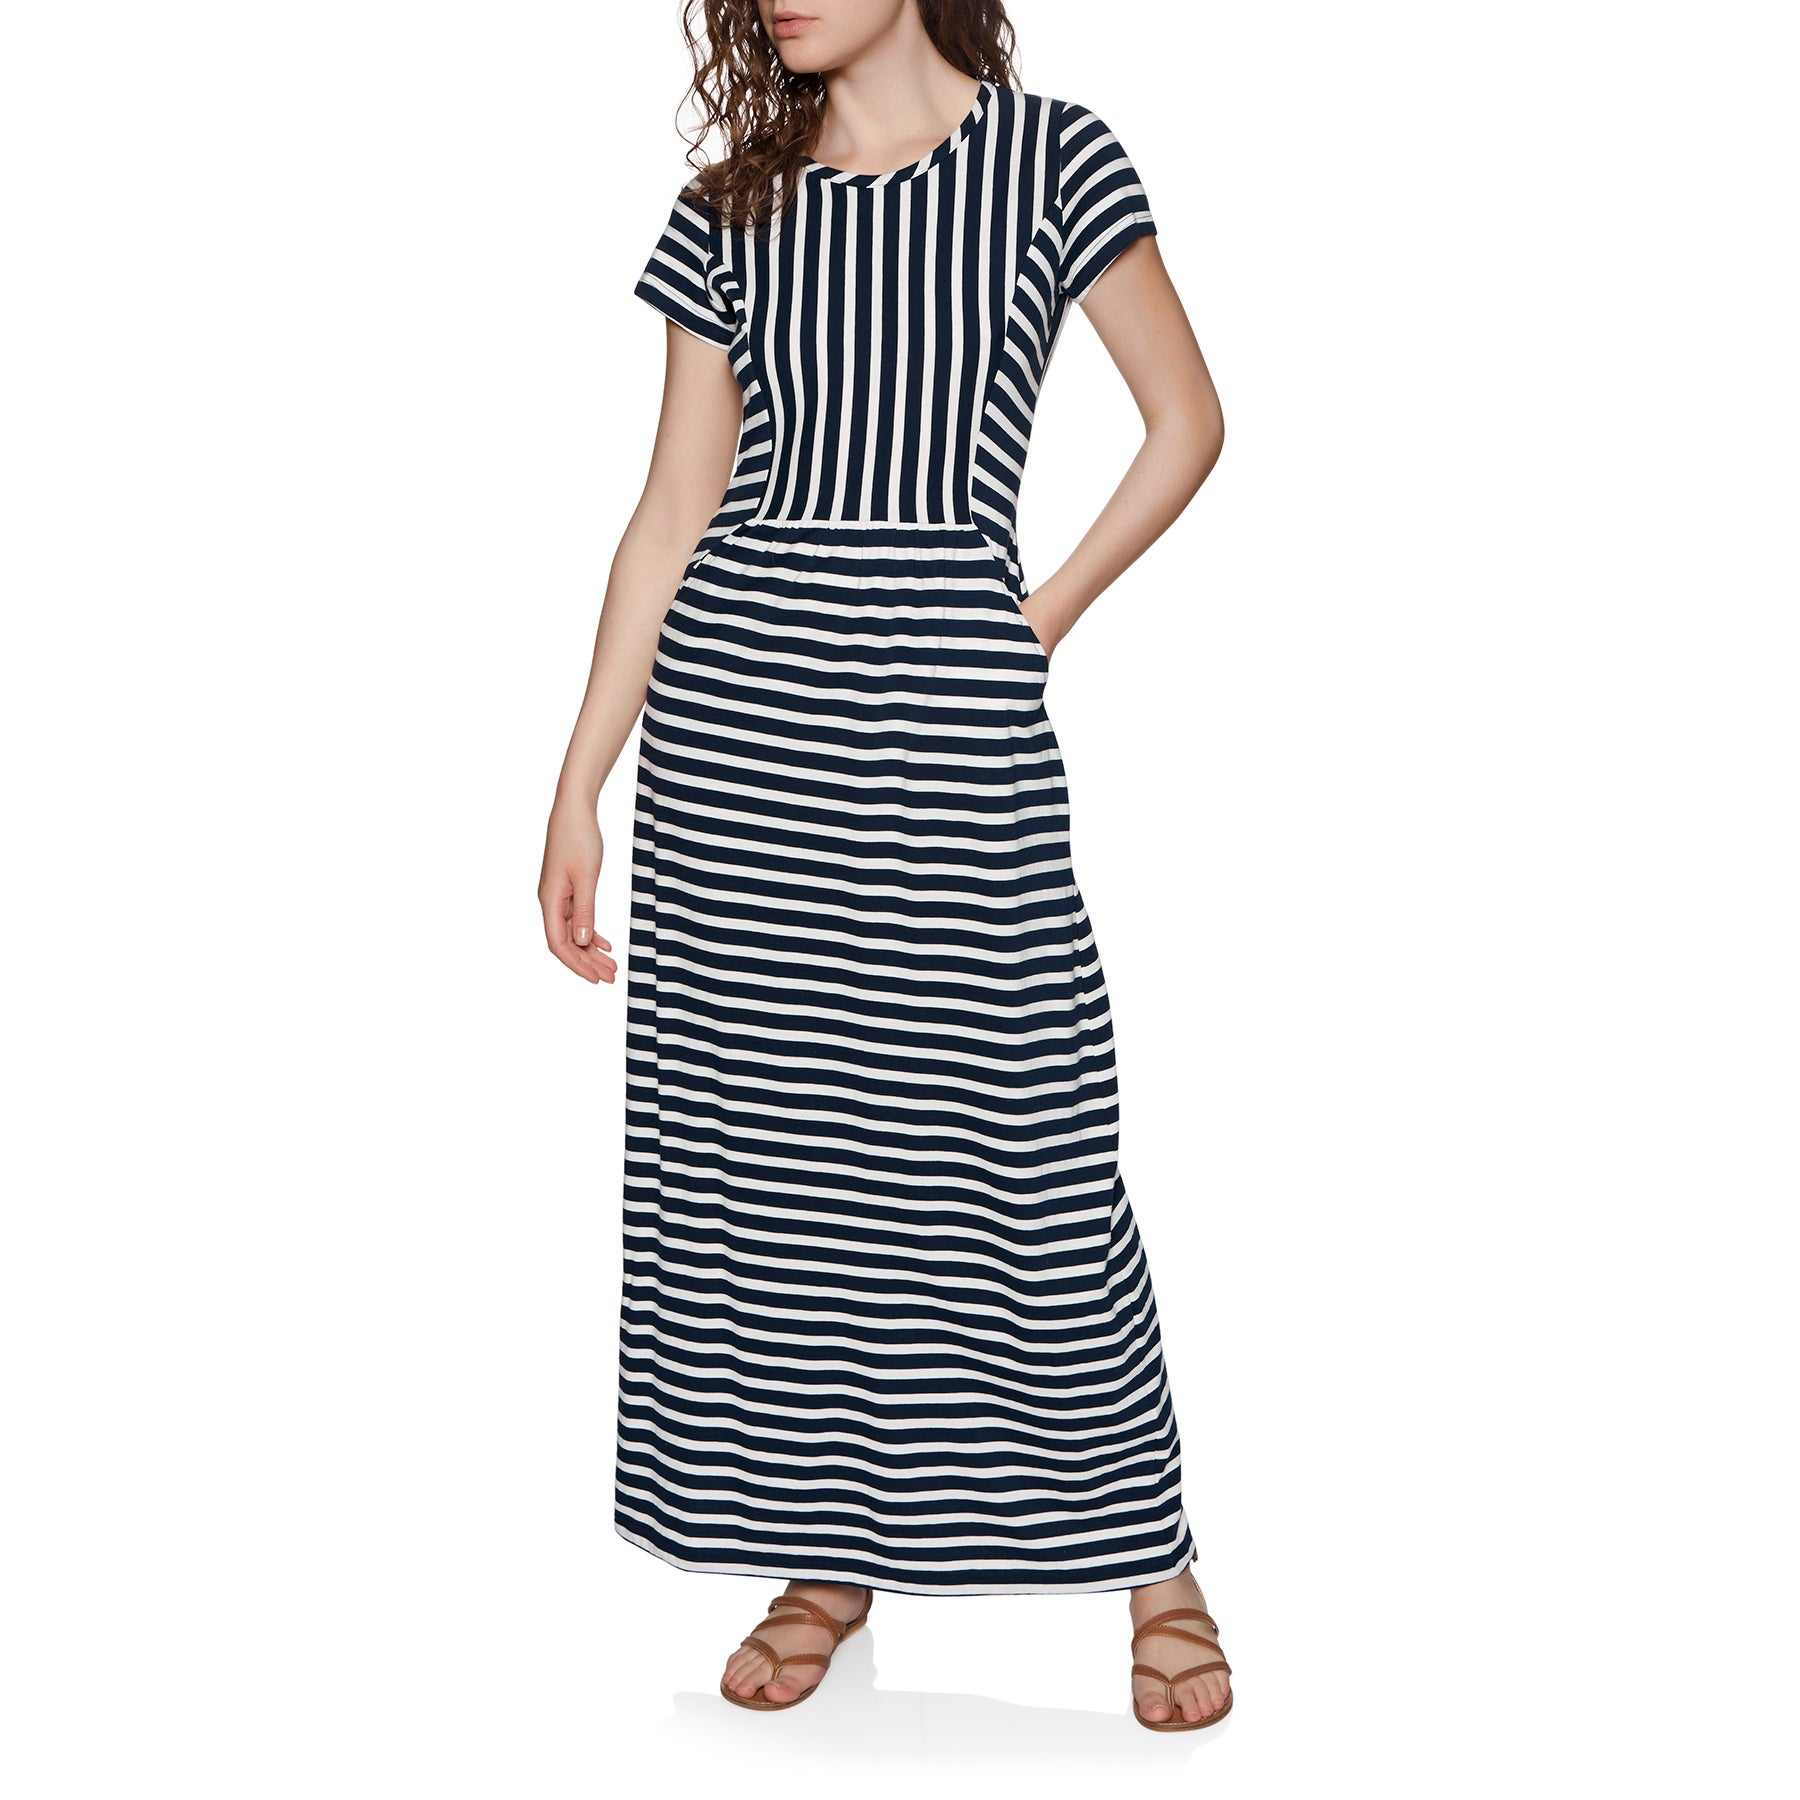 Joules Trudy Womens Dress - Cream Navy Stripe